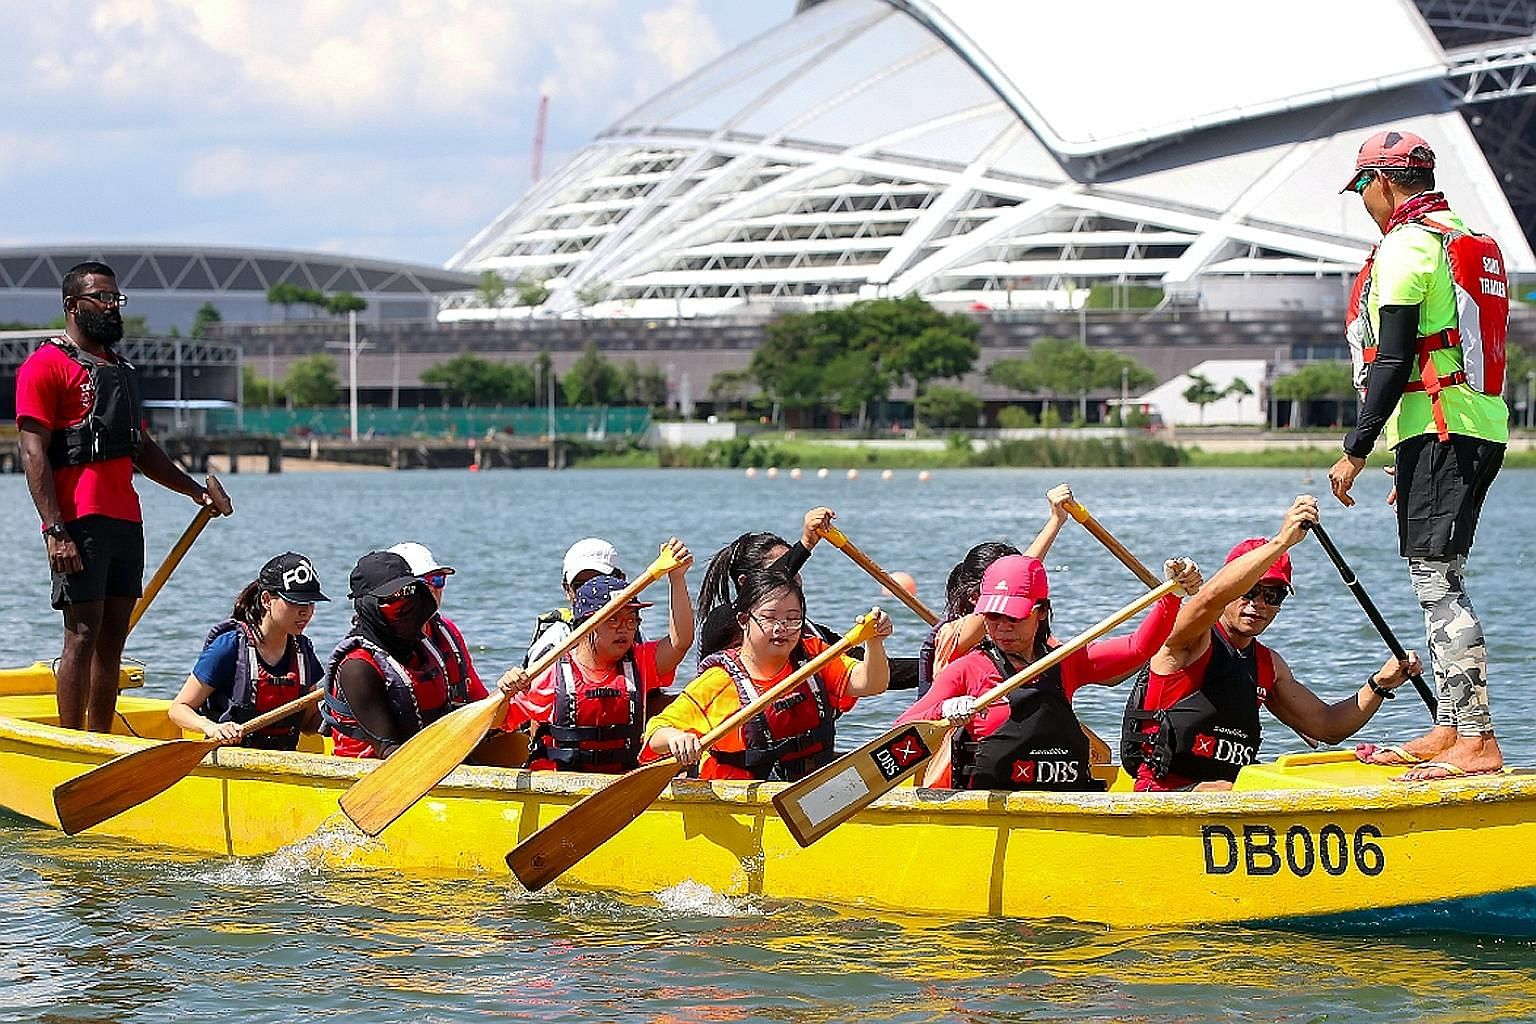 DBS Asia Dragons (competitive dragon boaters) have been coaching more than 60 youth with special needs and those at risk to prepare them for racing at the new Community Race category at the DBS Marina Regatta on June 2. A three-week training programm